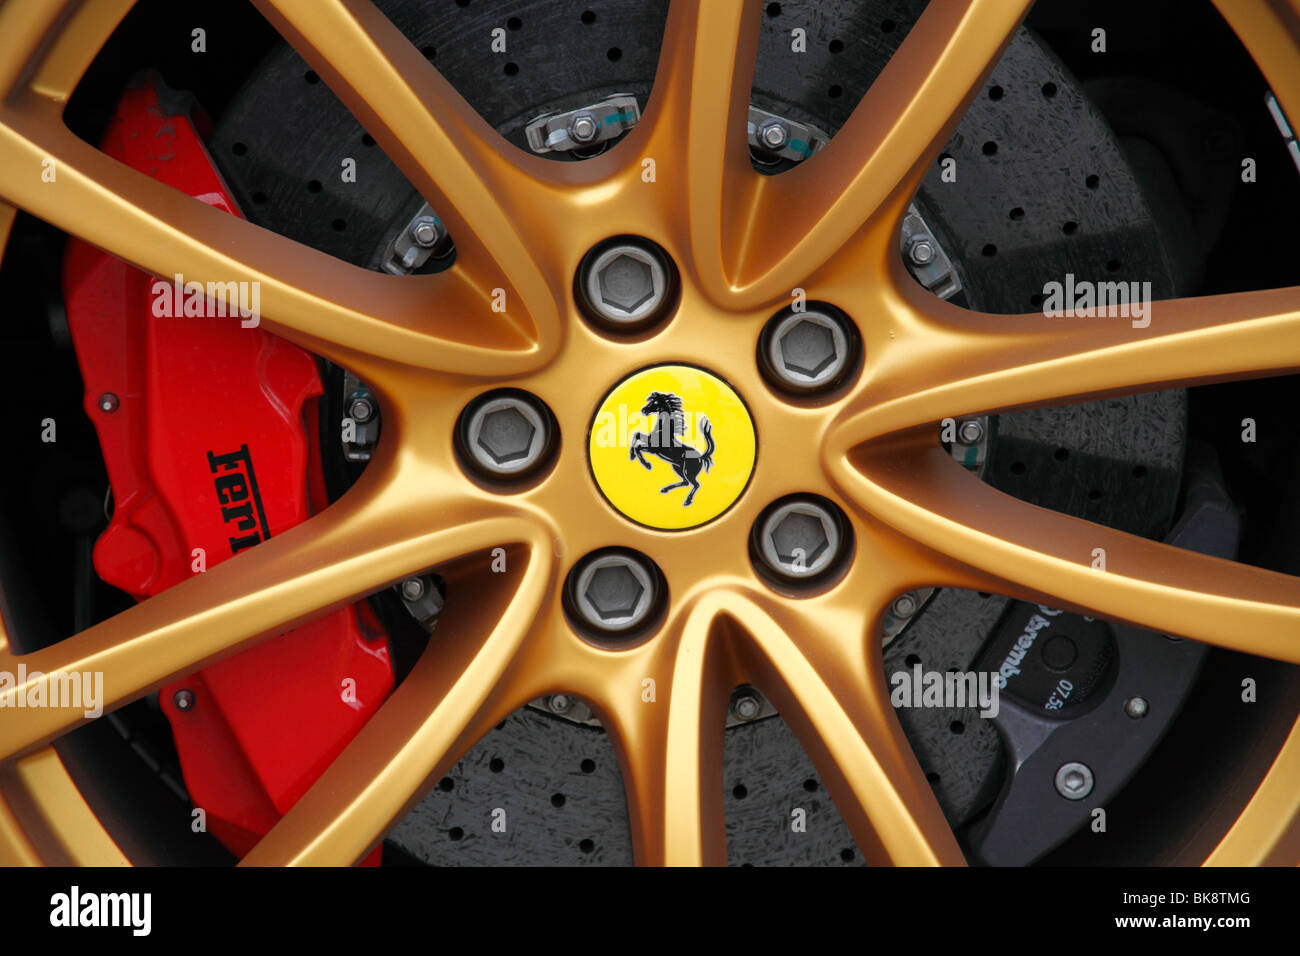 Alloy wheel of a Ferrari car and huge disk brakes by Brembo - Stock Image